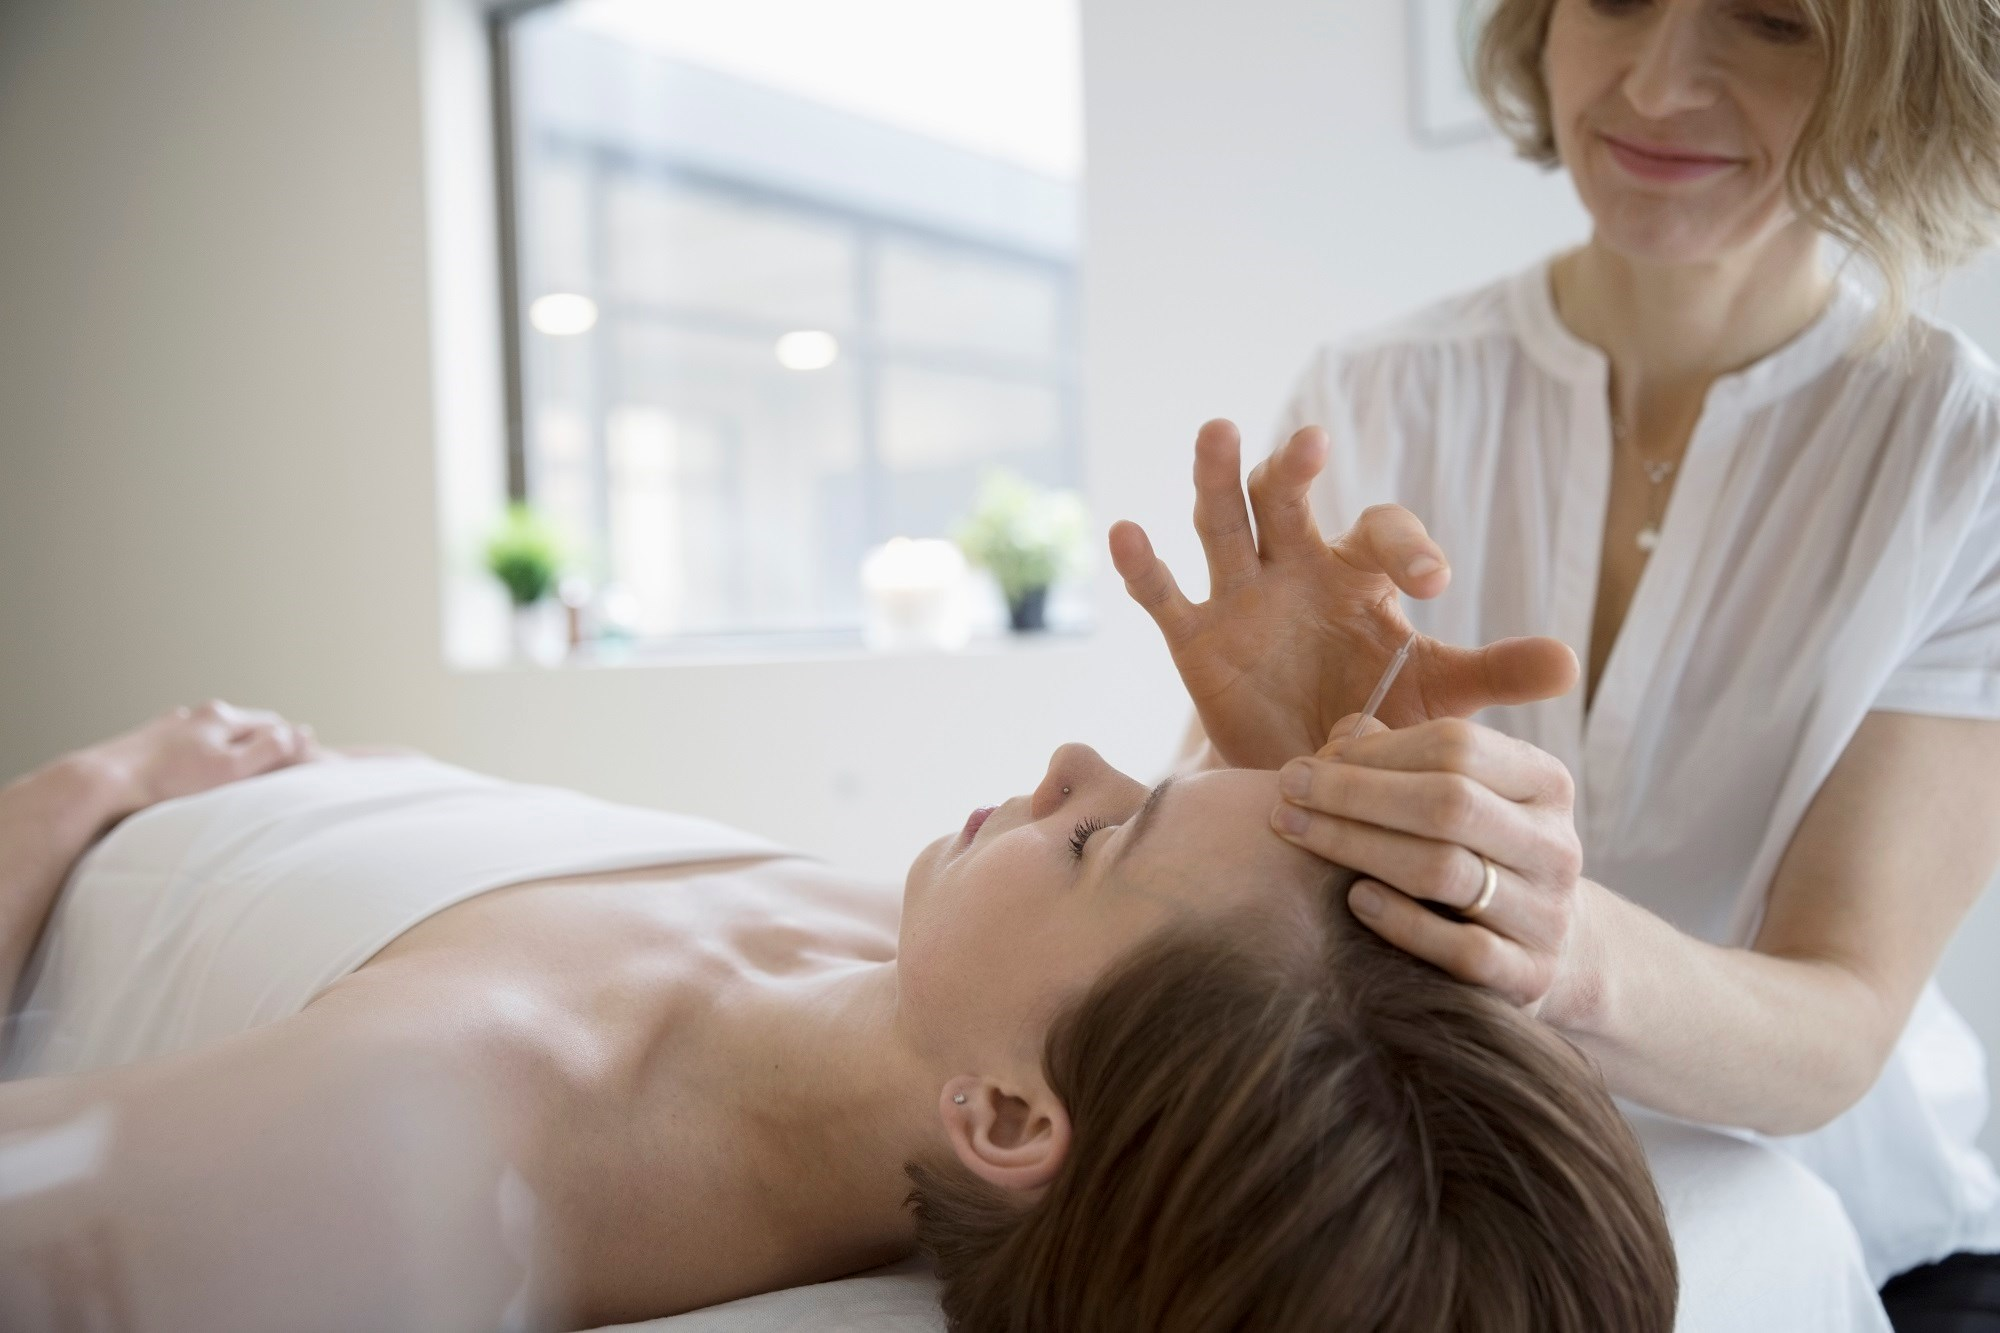 Complementary Medicine Use Ups Refusal of Usual Cancer Therapy